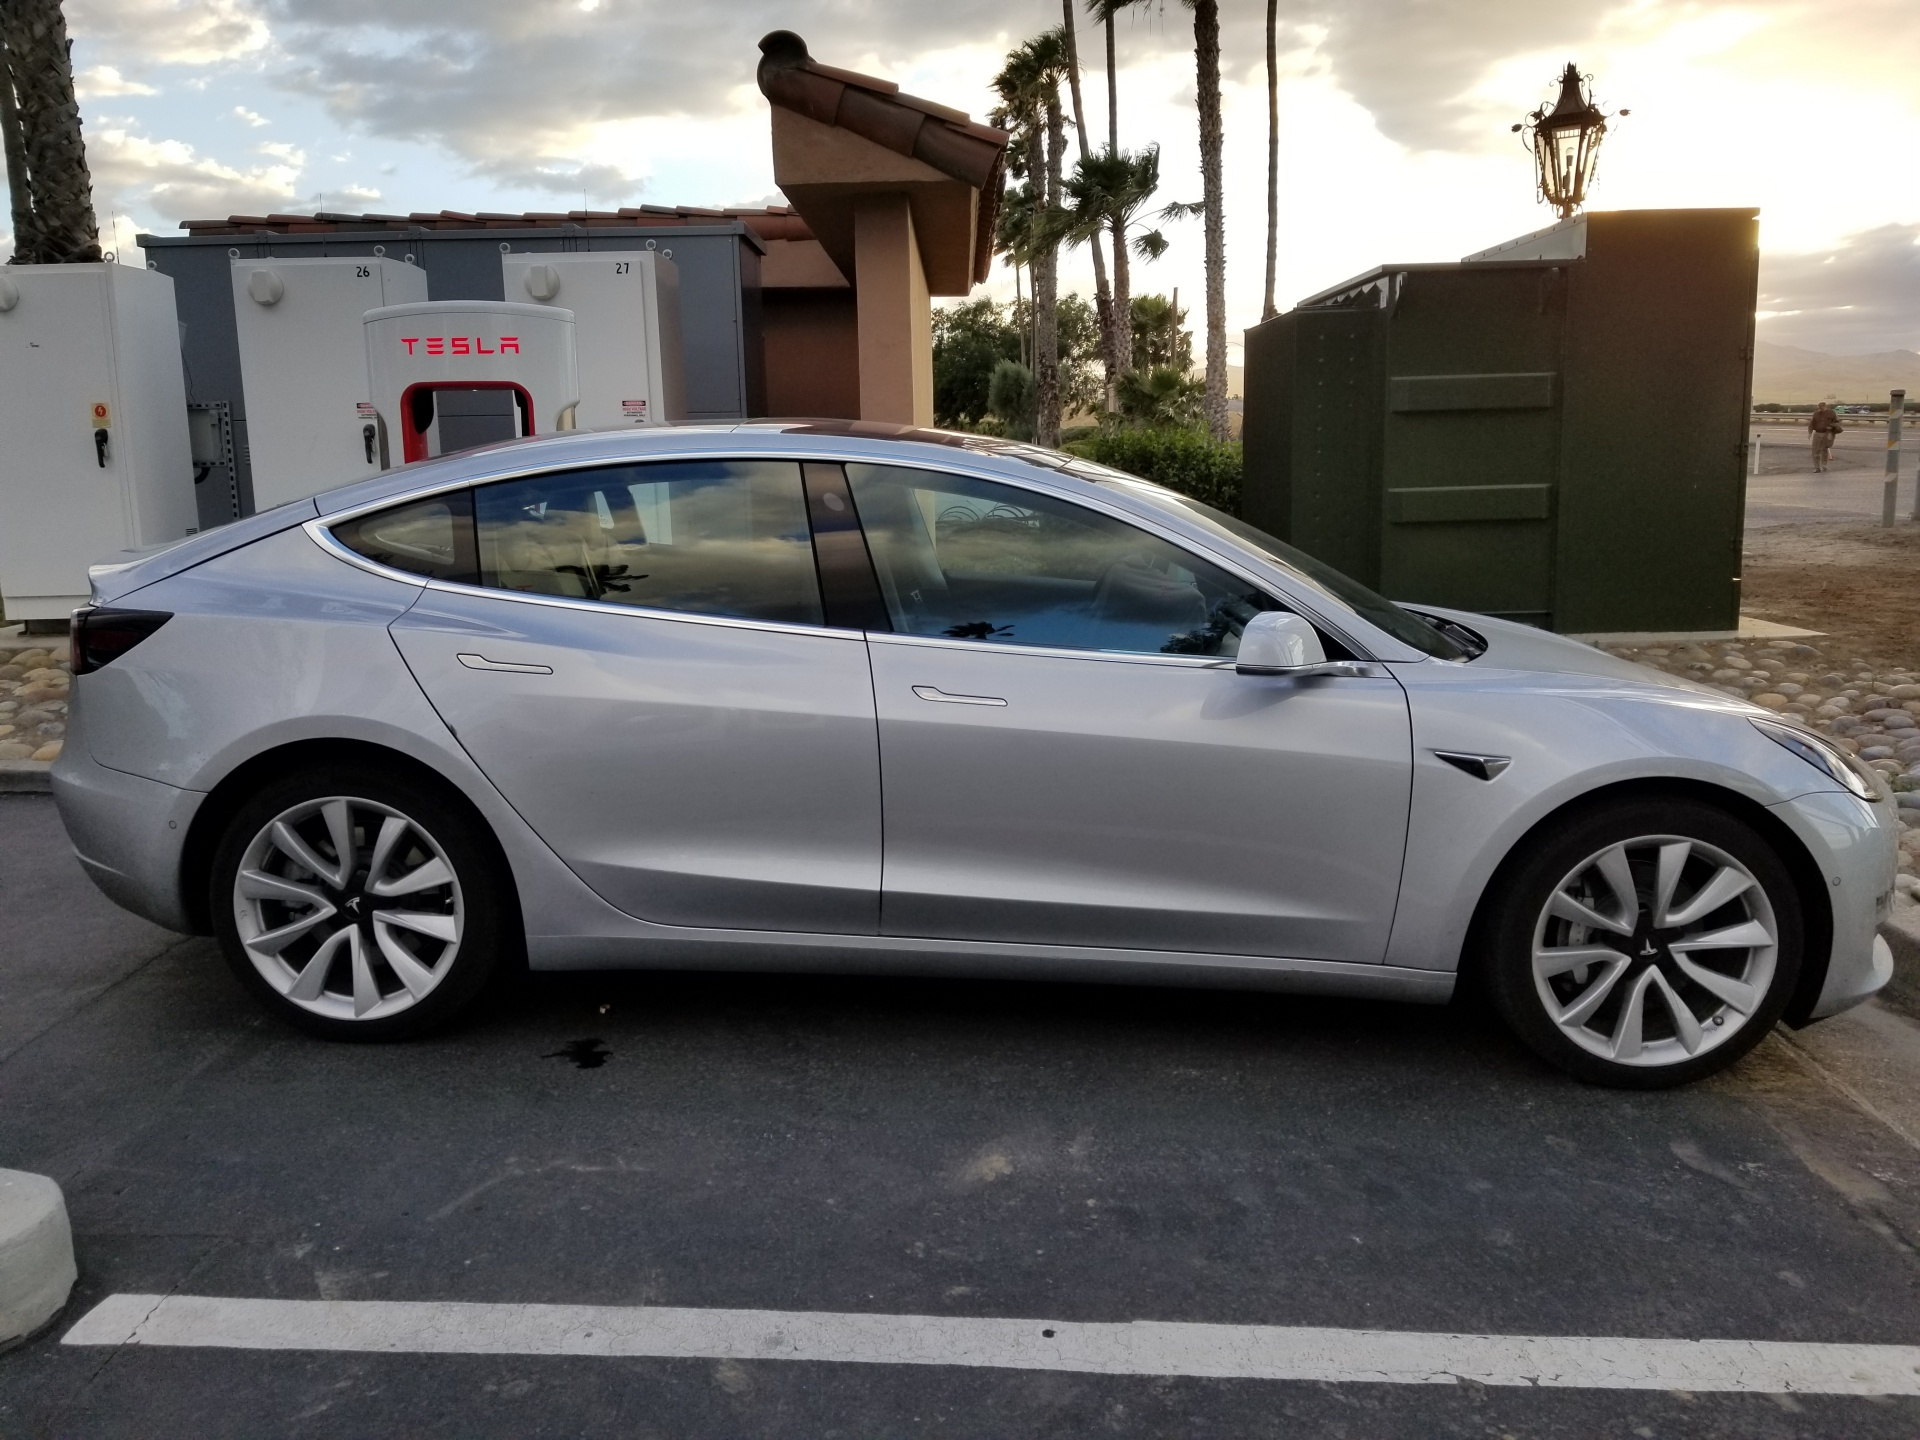 Tesla Model 3 Spotted Supercharging Midway Between Sf And La